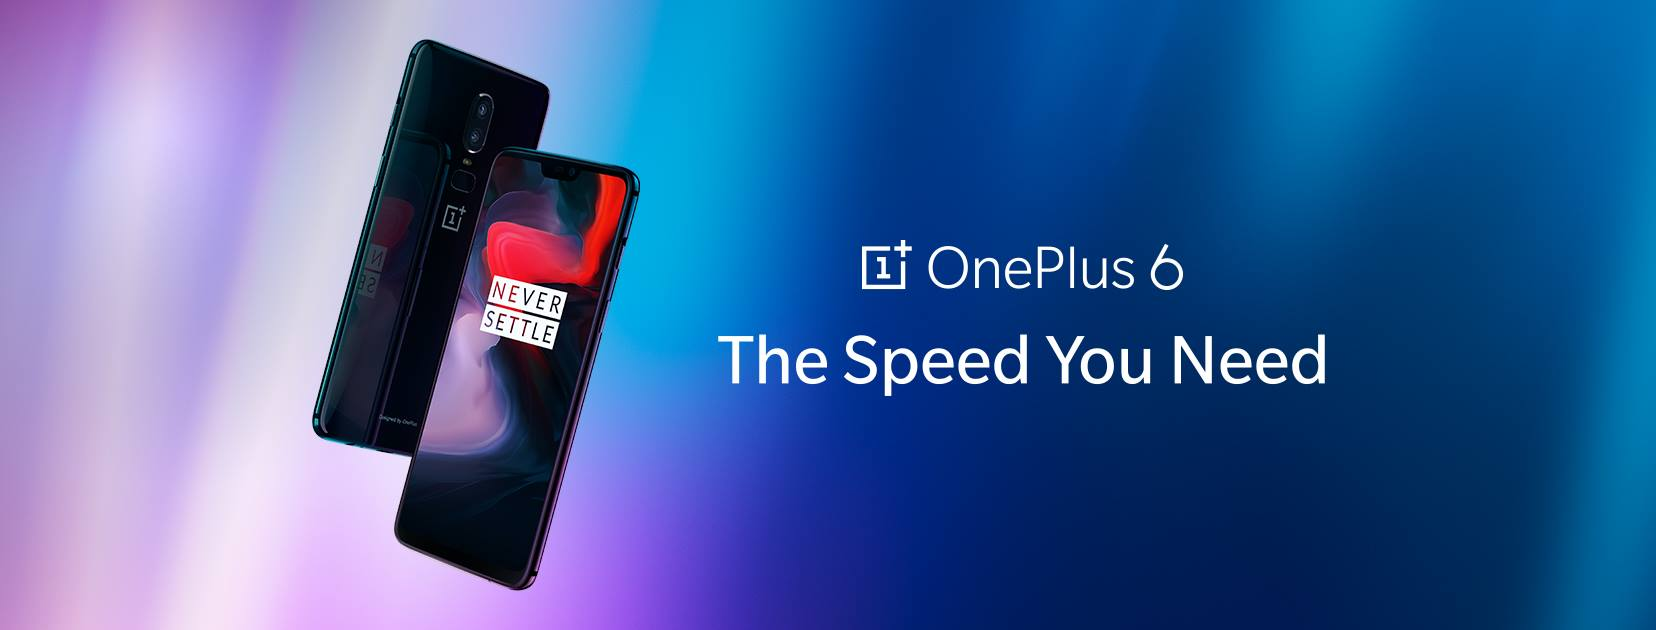 OnePlus 6 on SOUQ.com